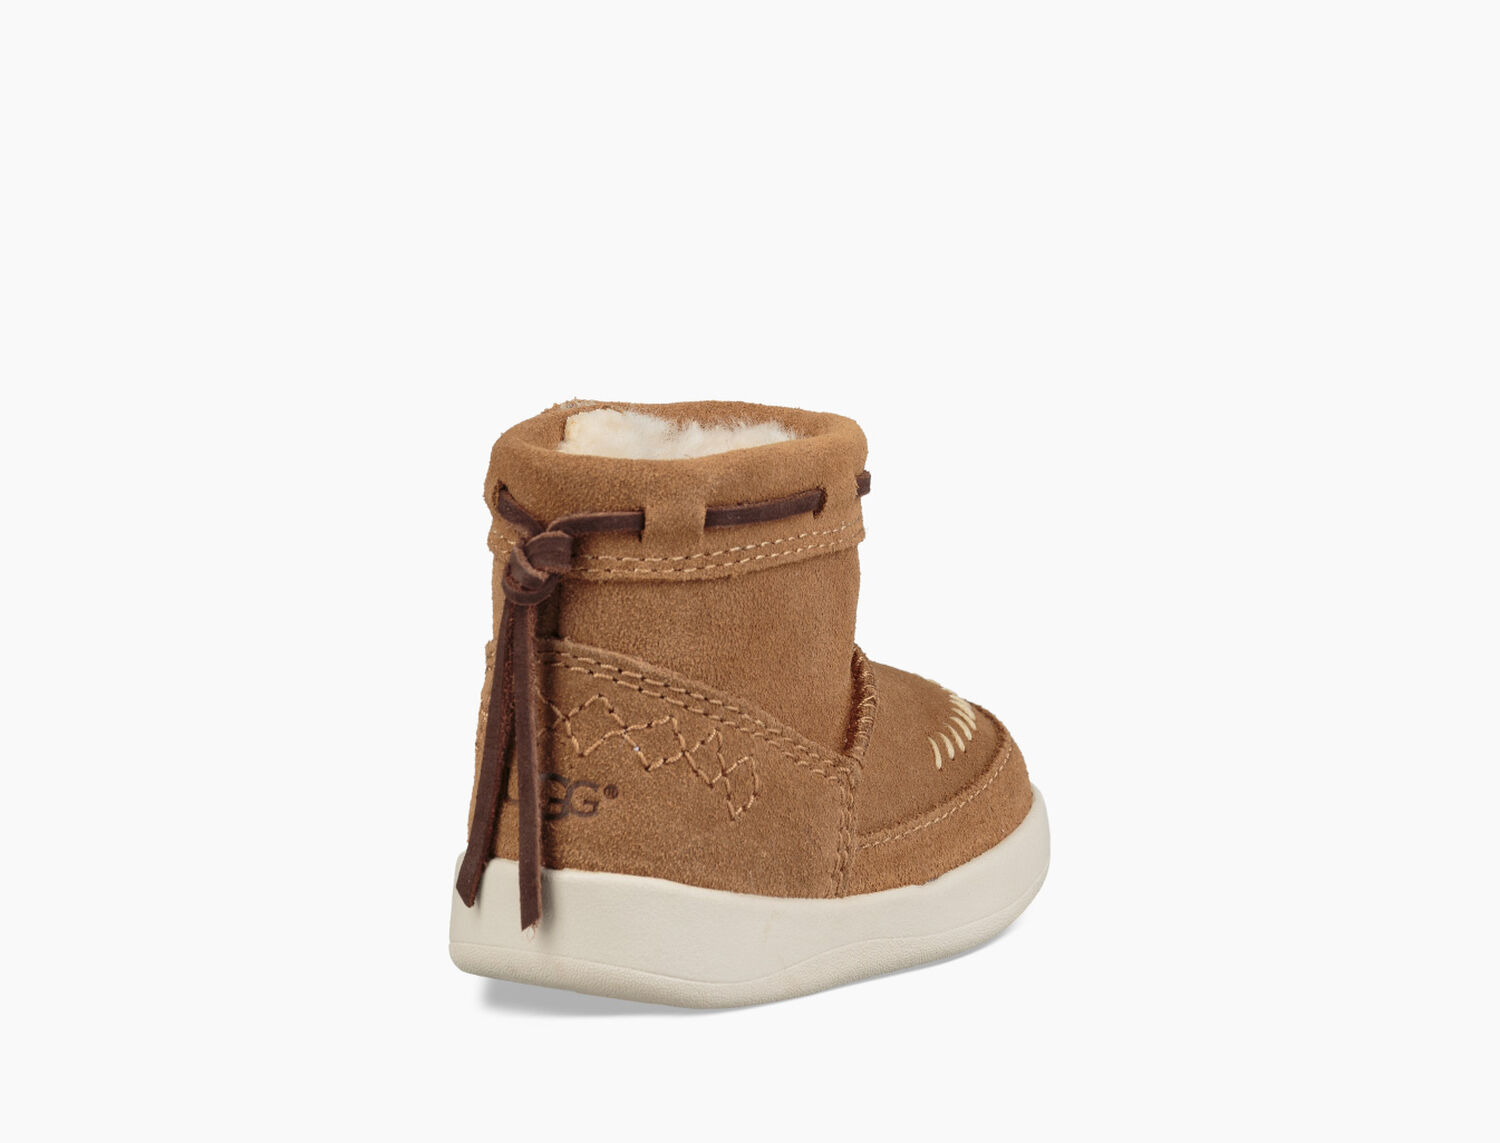 10cc774f8c4 Baby Share this product Cali Moc Campfire Boot